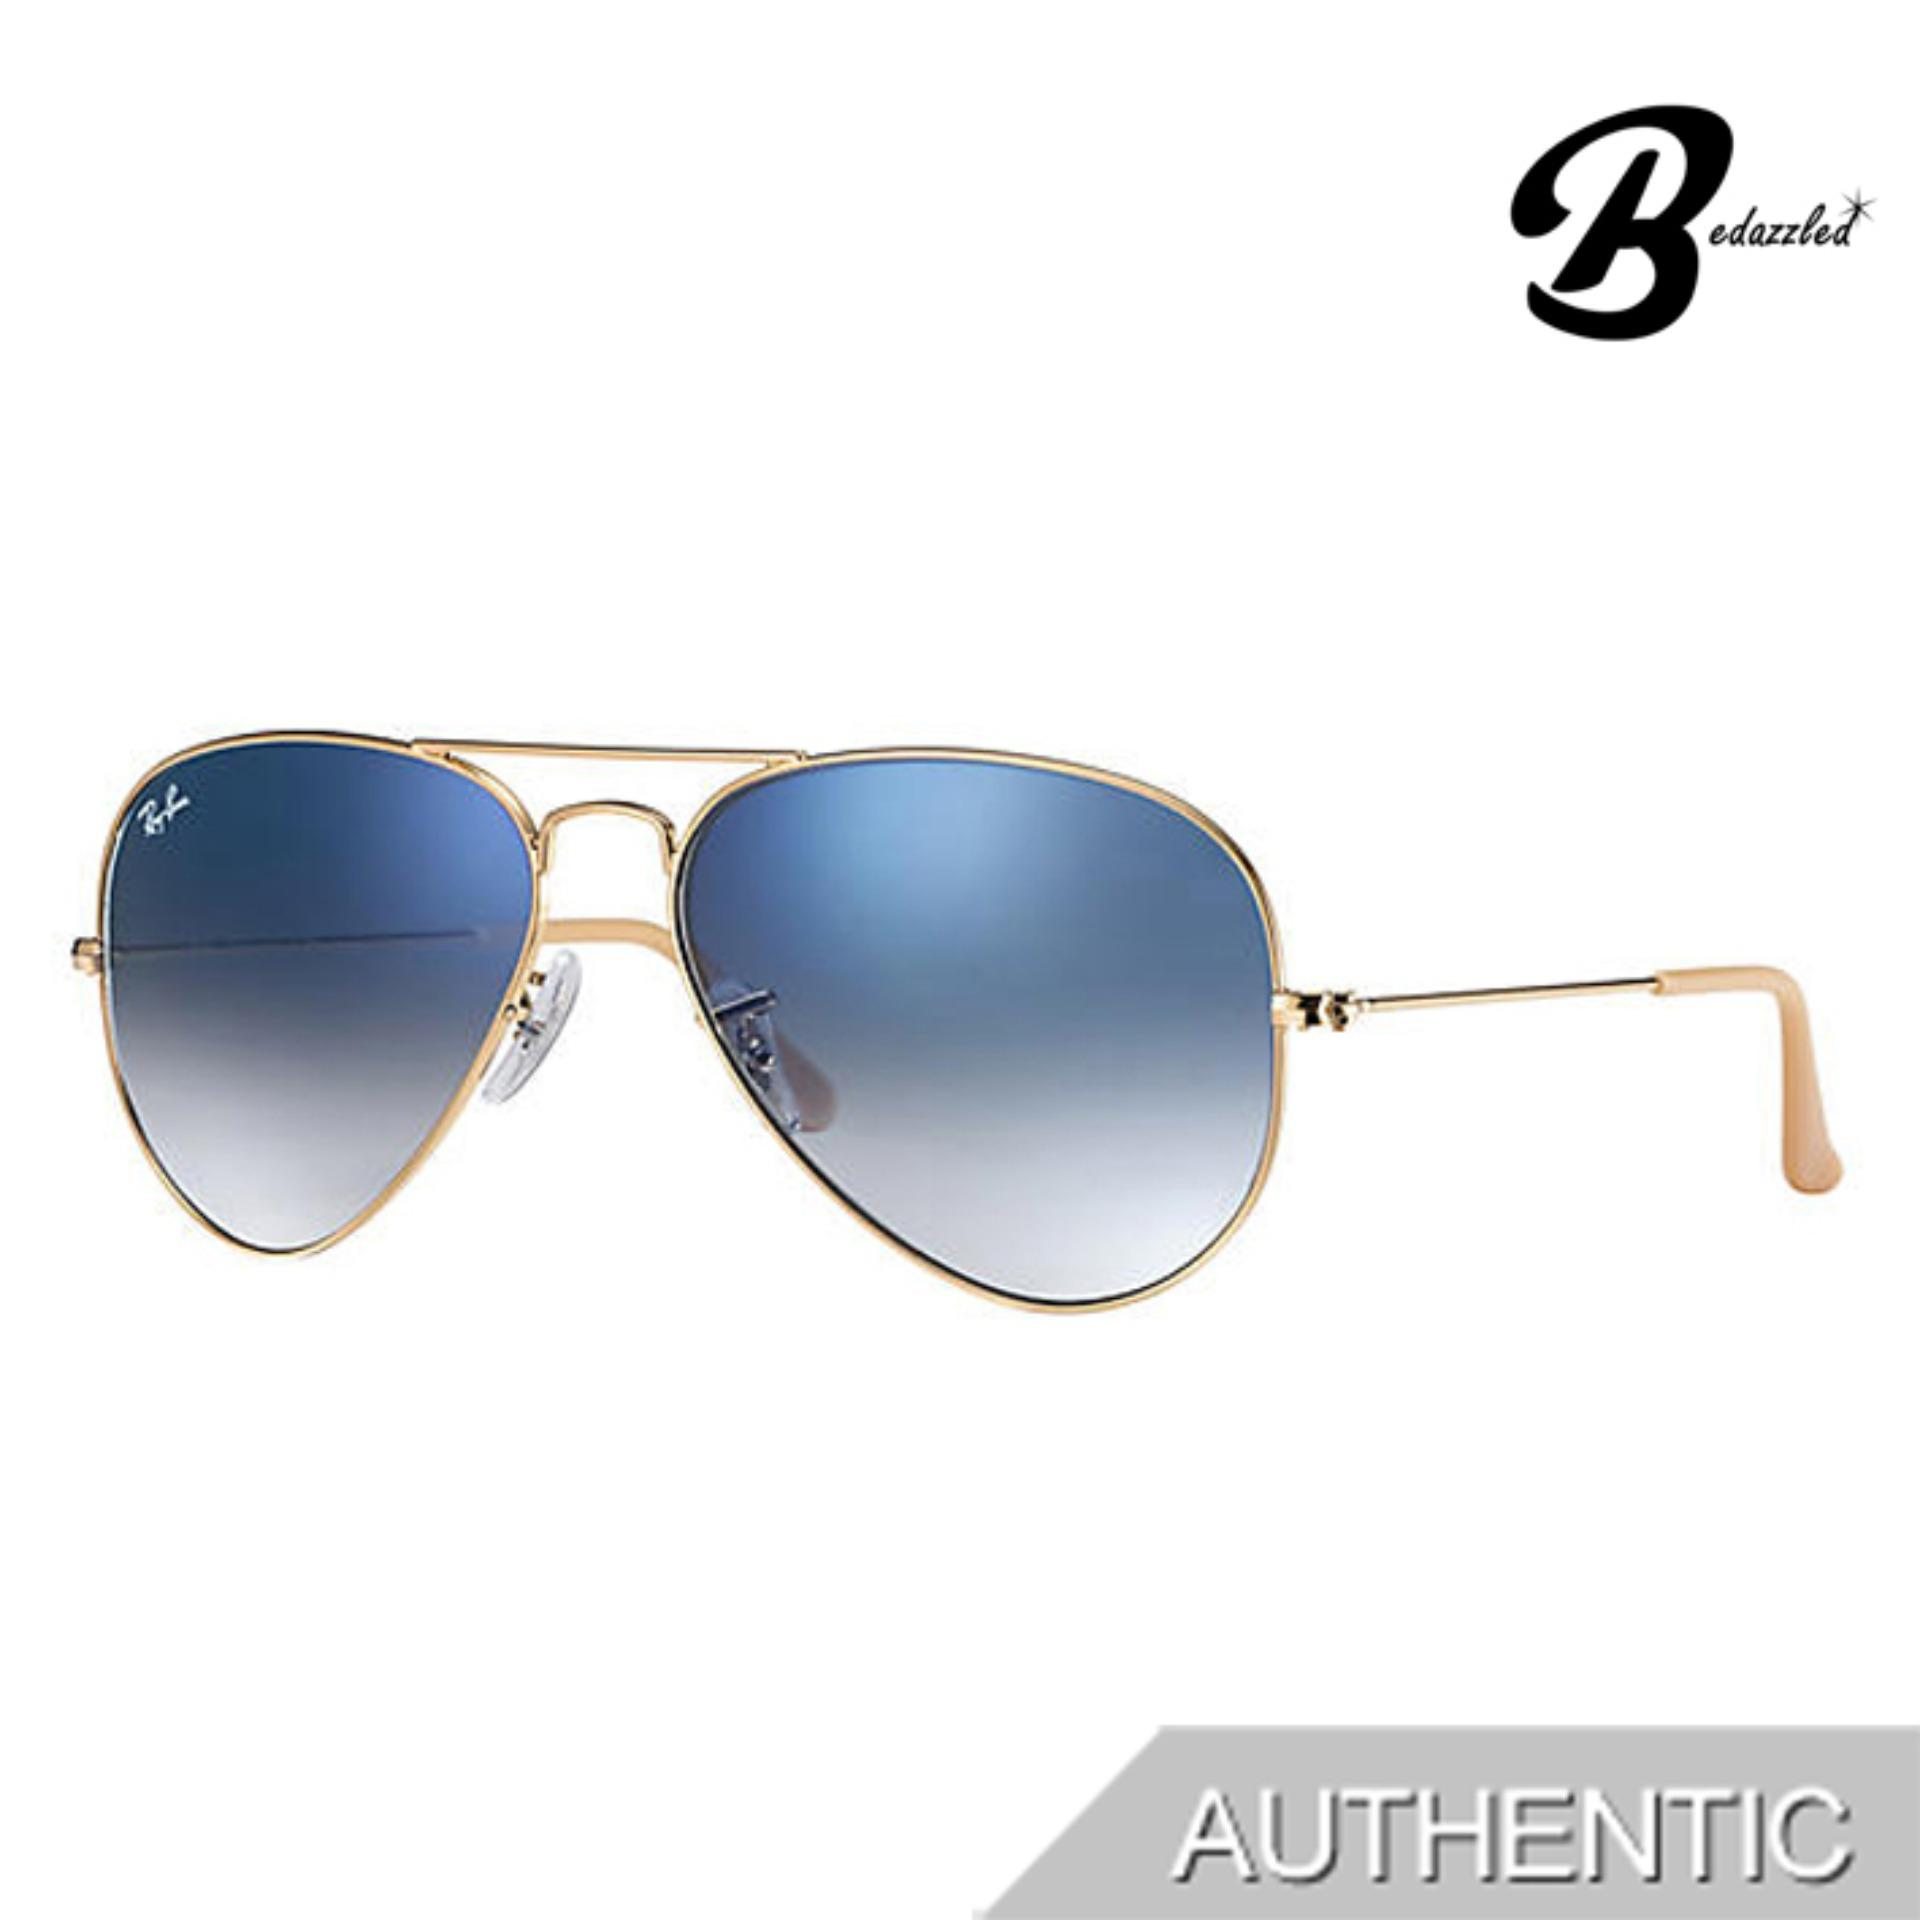 Ray-Ban Aviator Gradient Rb3025001/3f58 By Bedazzled.